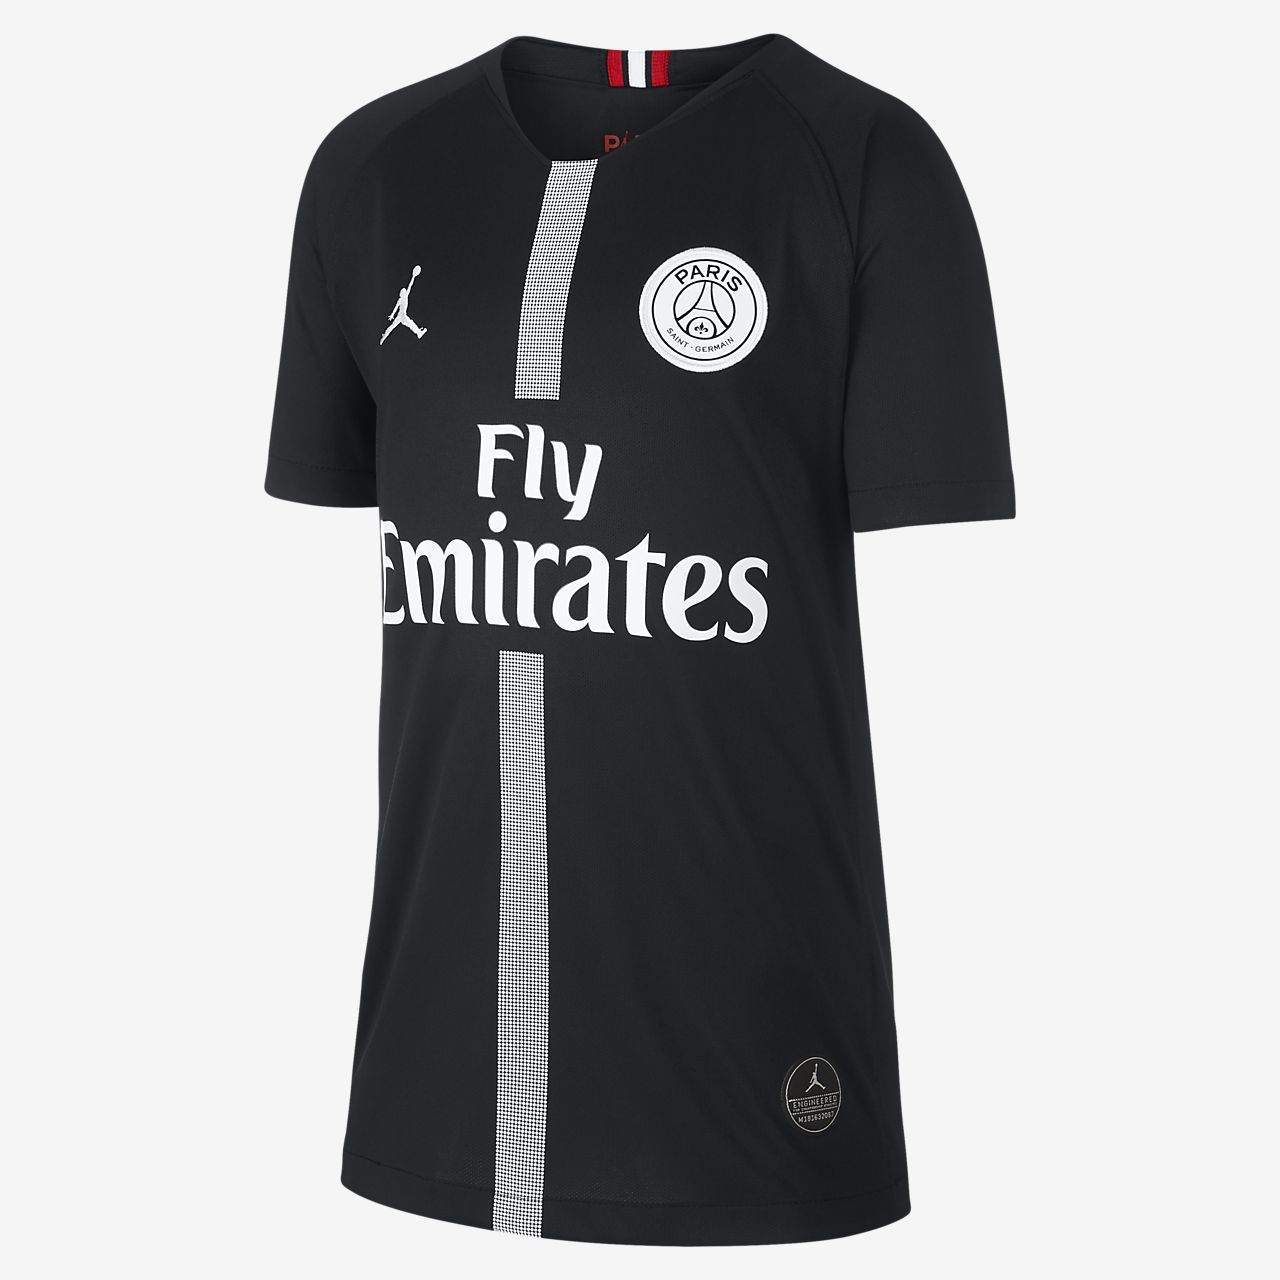 6b1a5535c 2018 19 Paris Saint-Germain Stadium Third Older Kids  Football Shirt ...